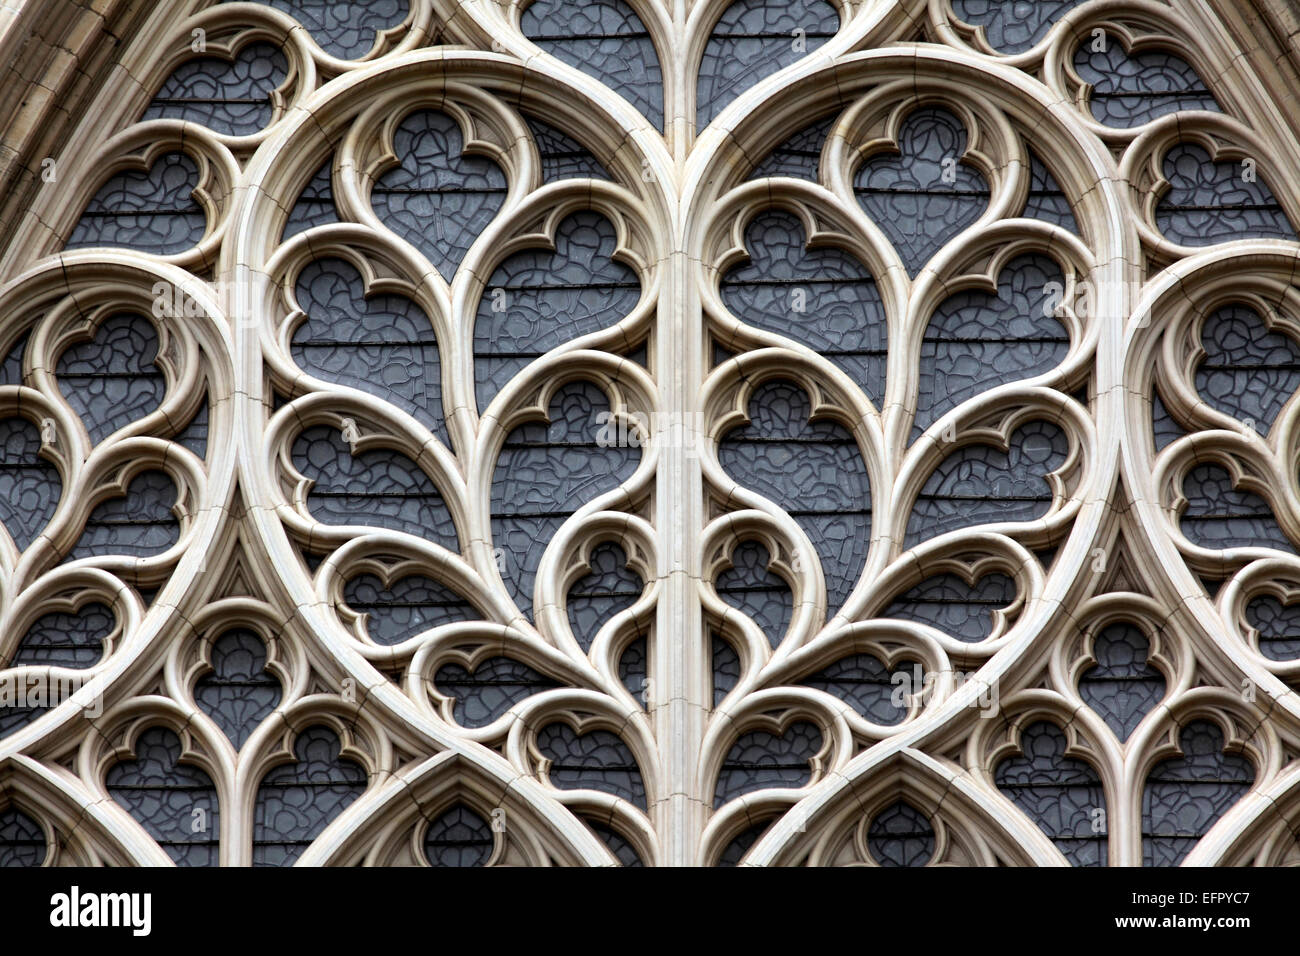 Close up of the stone tracery in the west window of York Minster. (Photo taken from the outside.) - Stock Image